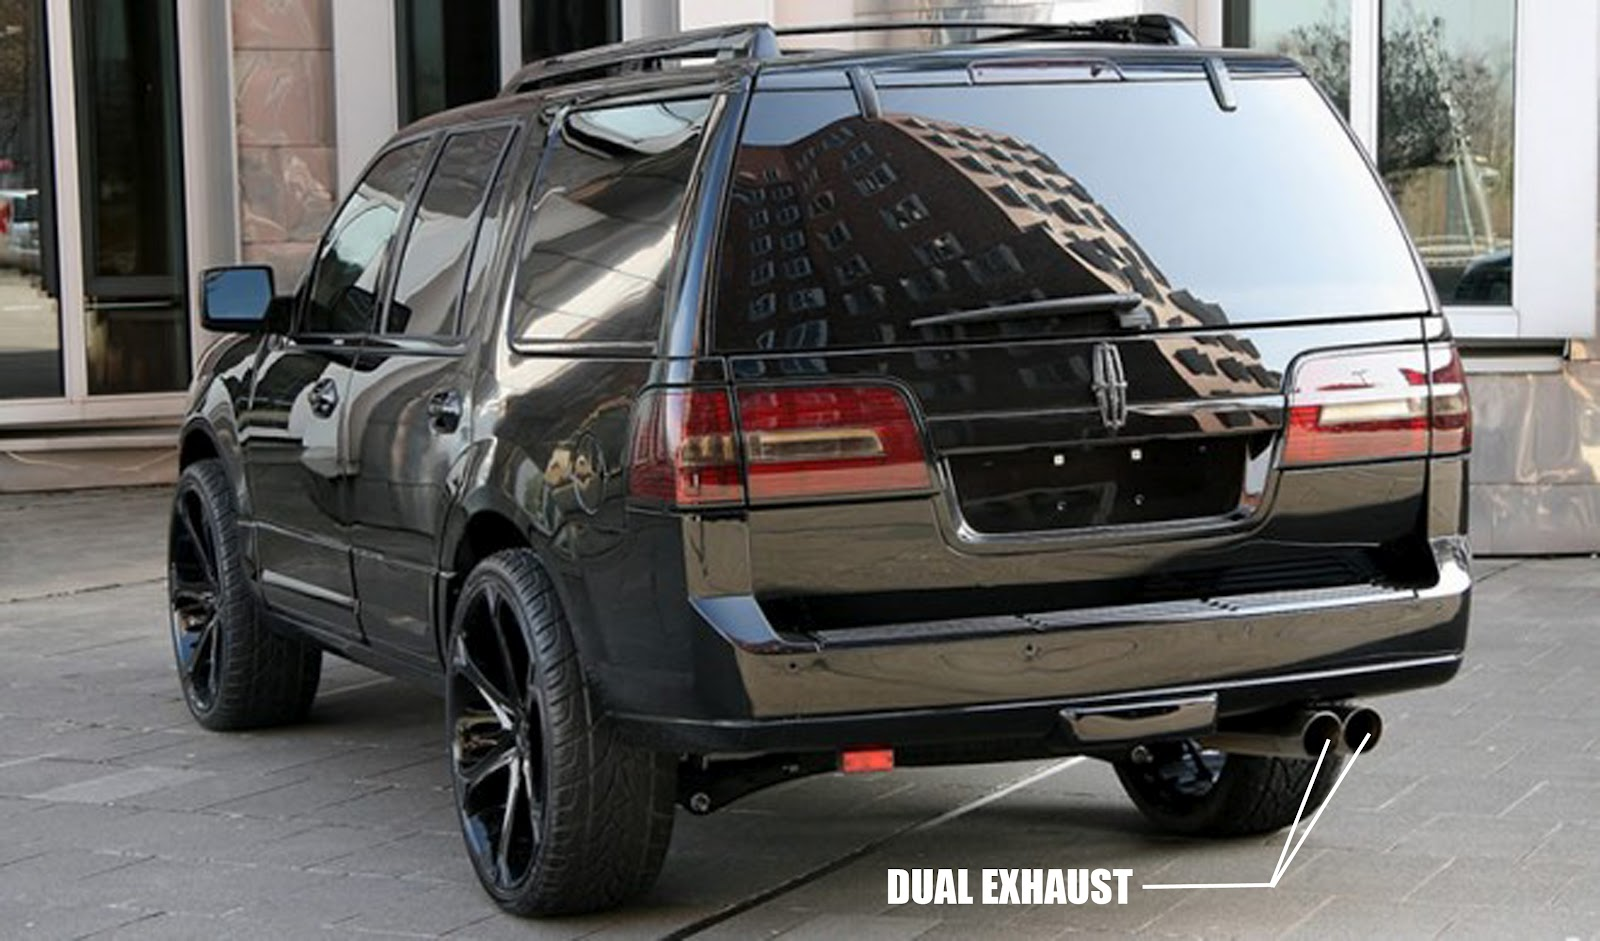 Navigator Front Body Kit Bumper Custom Sarona also  besides White Cadillac Escalade Savini Forged Wheels Sv C Concave White Chrome additionally Lincoln Navigator Body Kit Custom Fenders Sarona Body Kit Spoiler Custom Design New Chrome Mesh Grill Accessories moreover Anderson Germany Customized Lincoln Navigator. on 2002 lincoln navigator custom